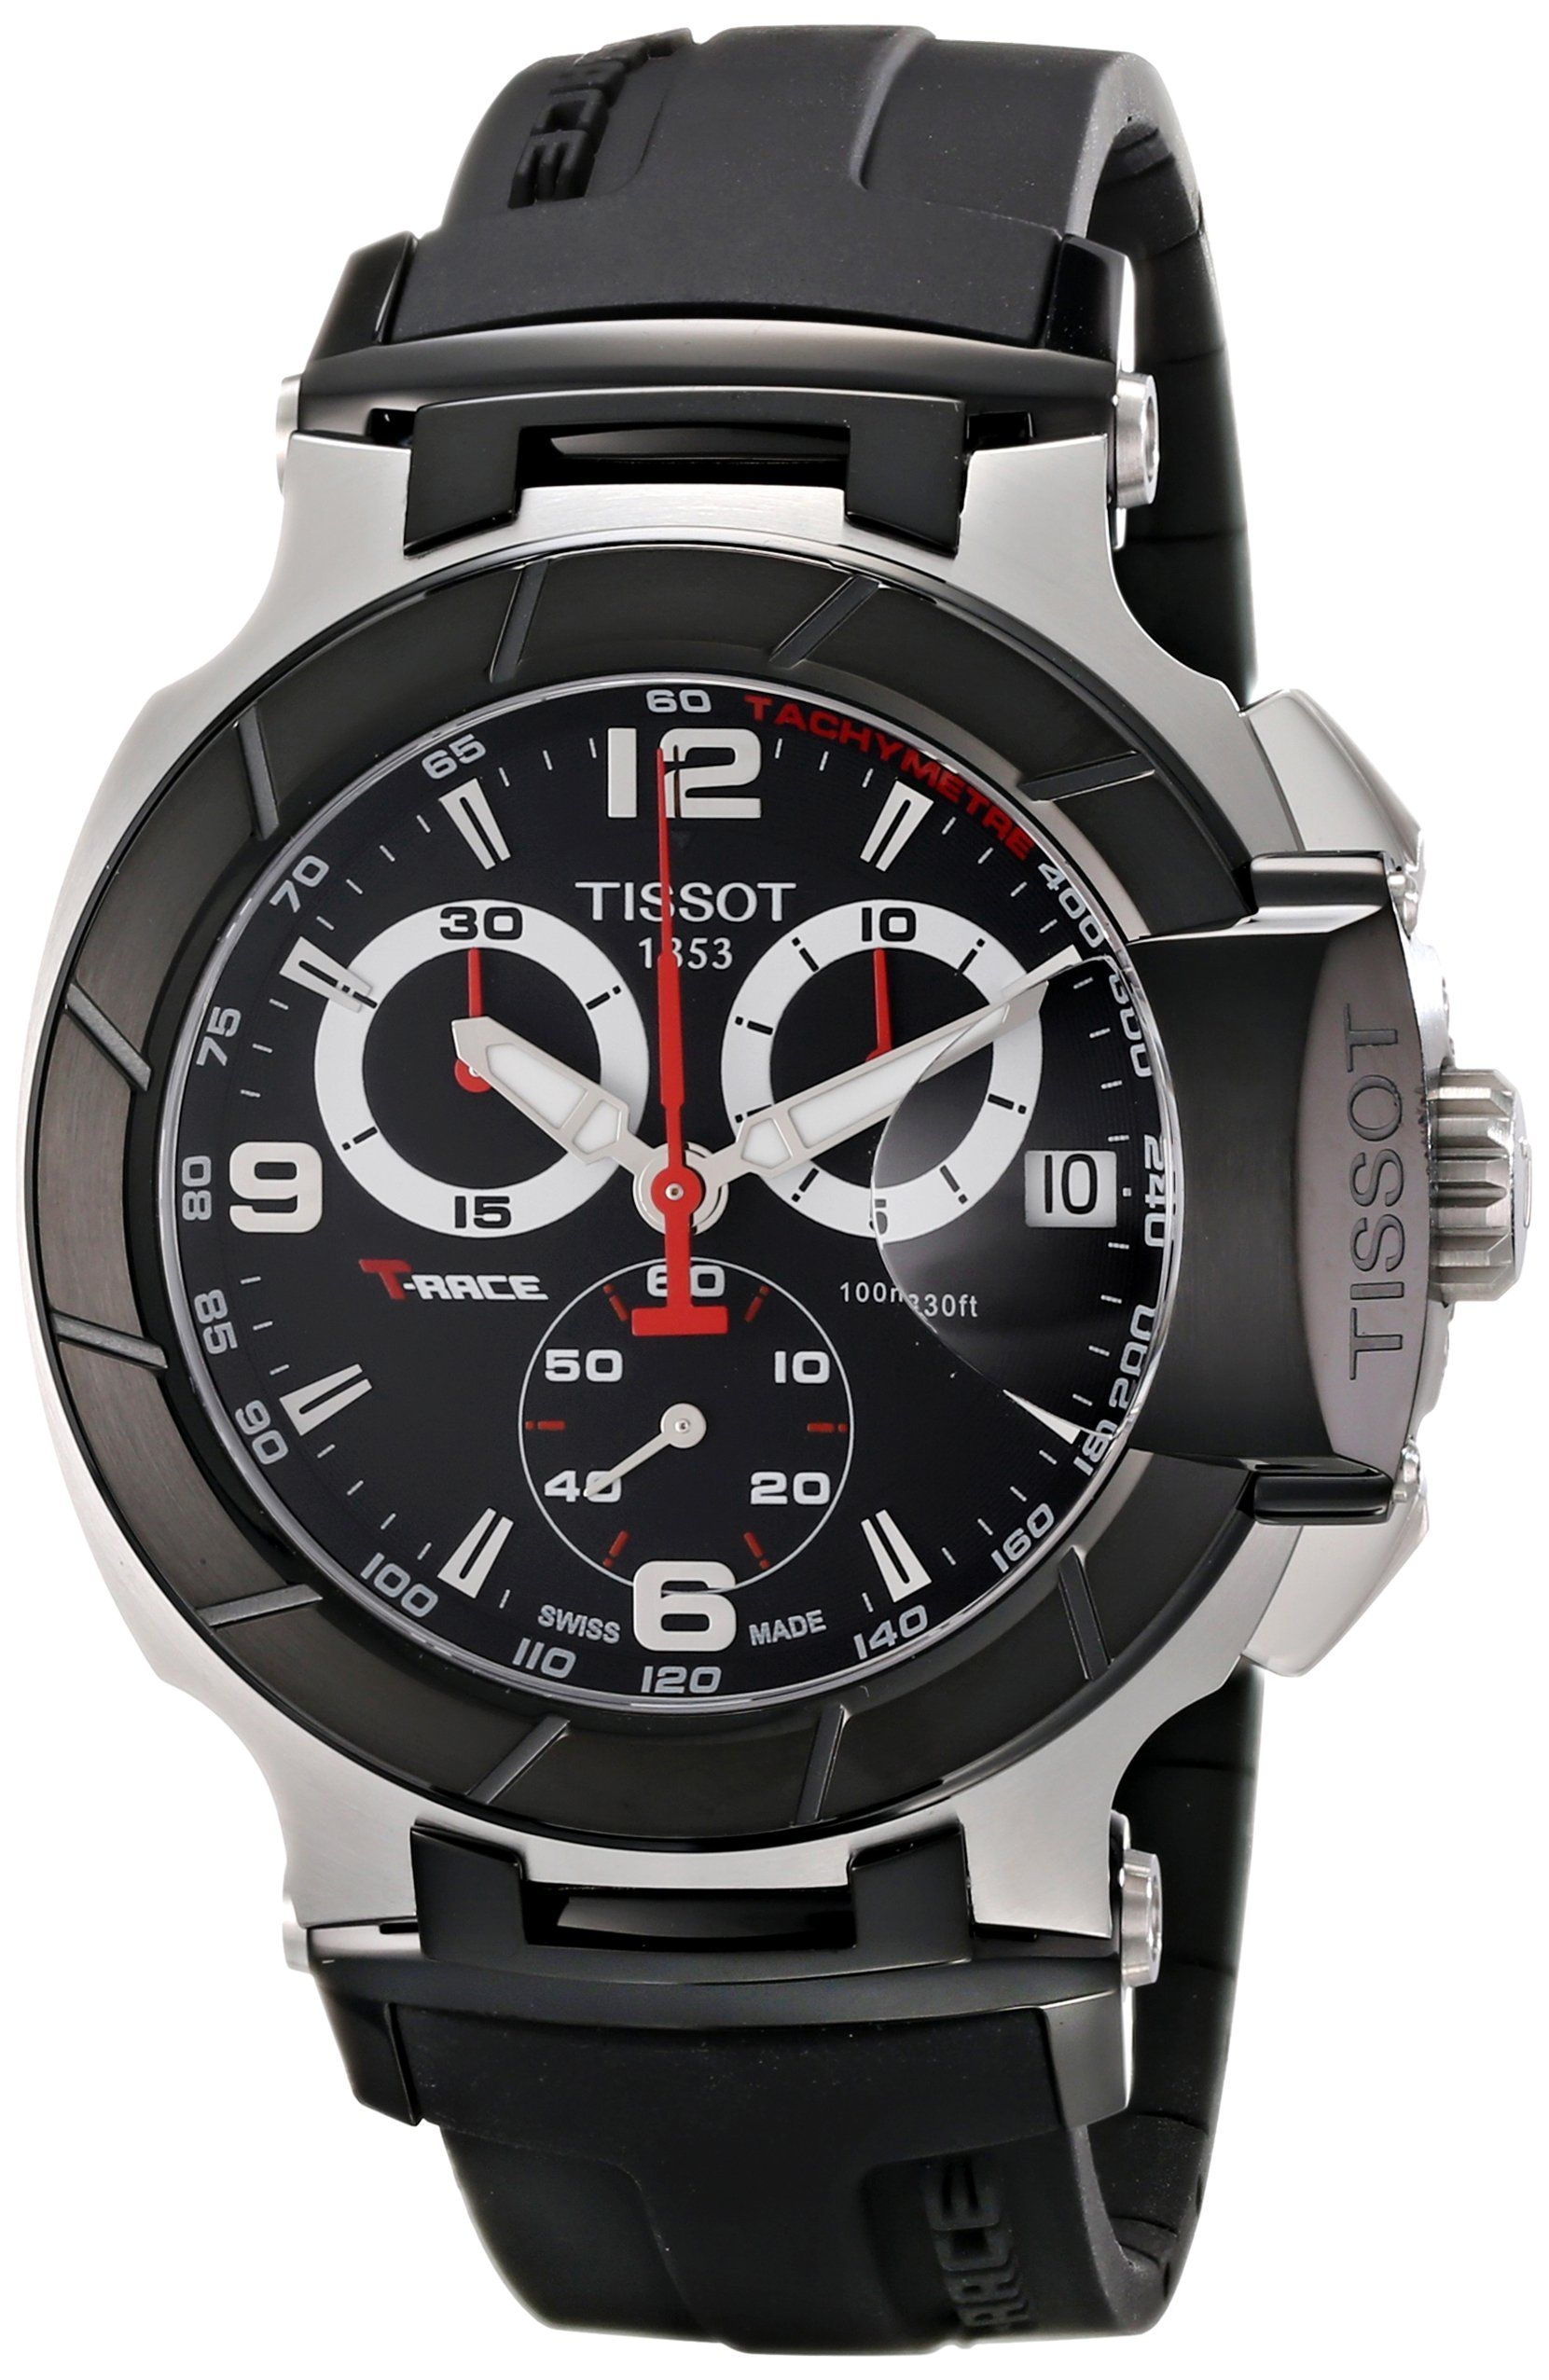 8a984269eed8 Tissot Men s T-Race Black Chronograph Dial Watch Relojes Caballero